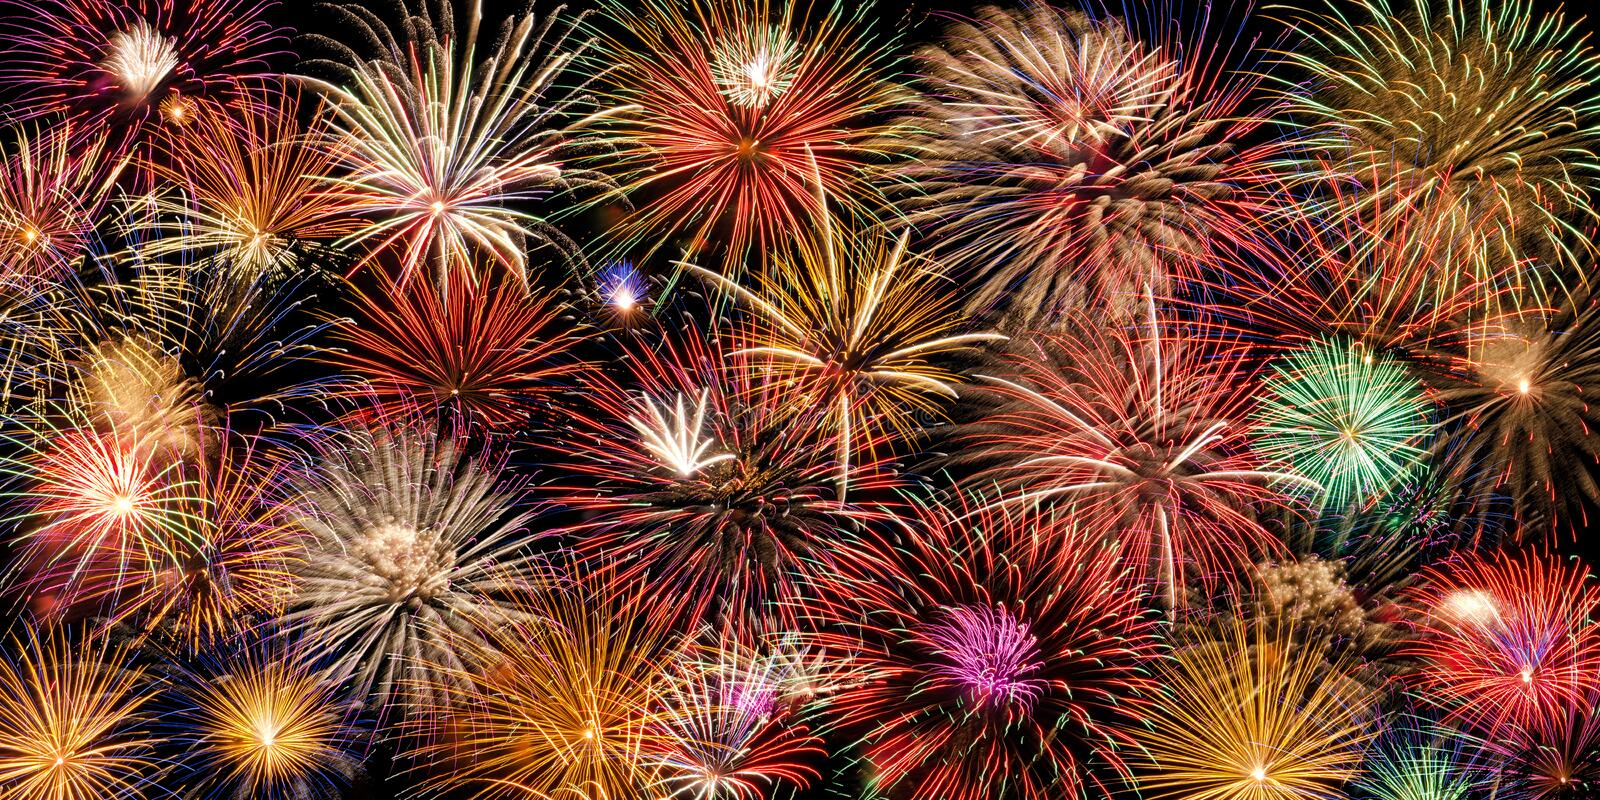 Festive fireworks display. Festive and colorful fireworks display stock photo